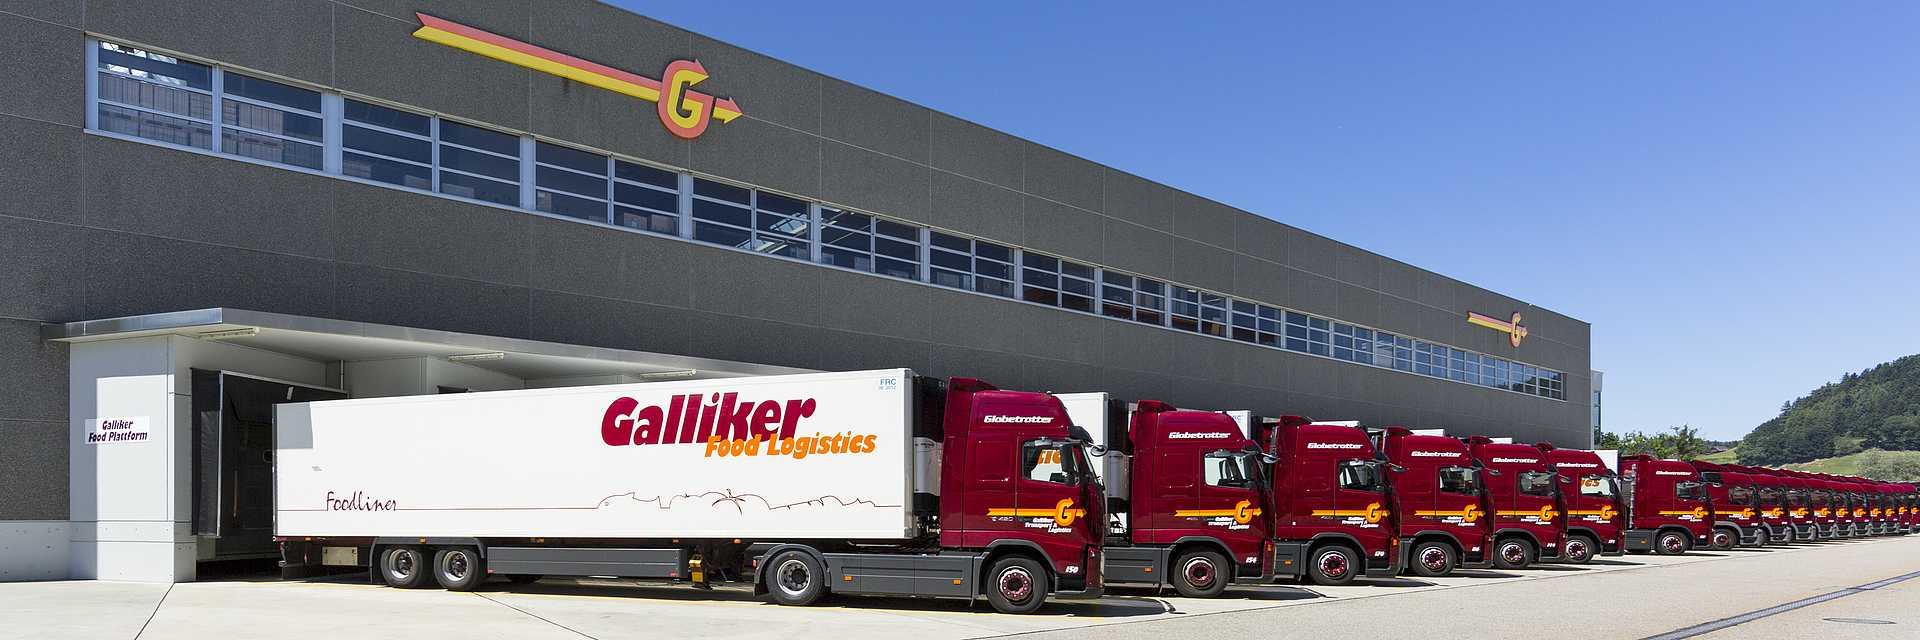 Galliker Transport Logistik TopPicture 018